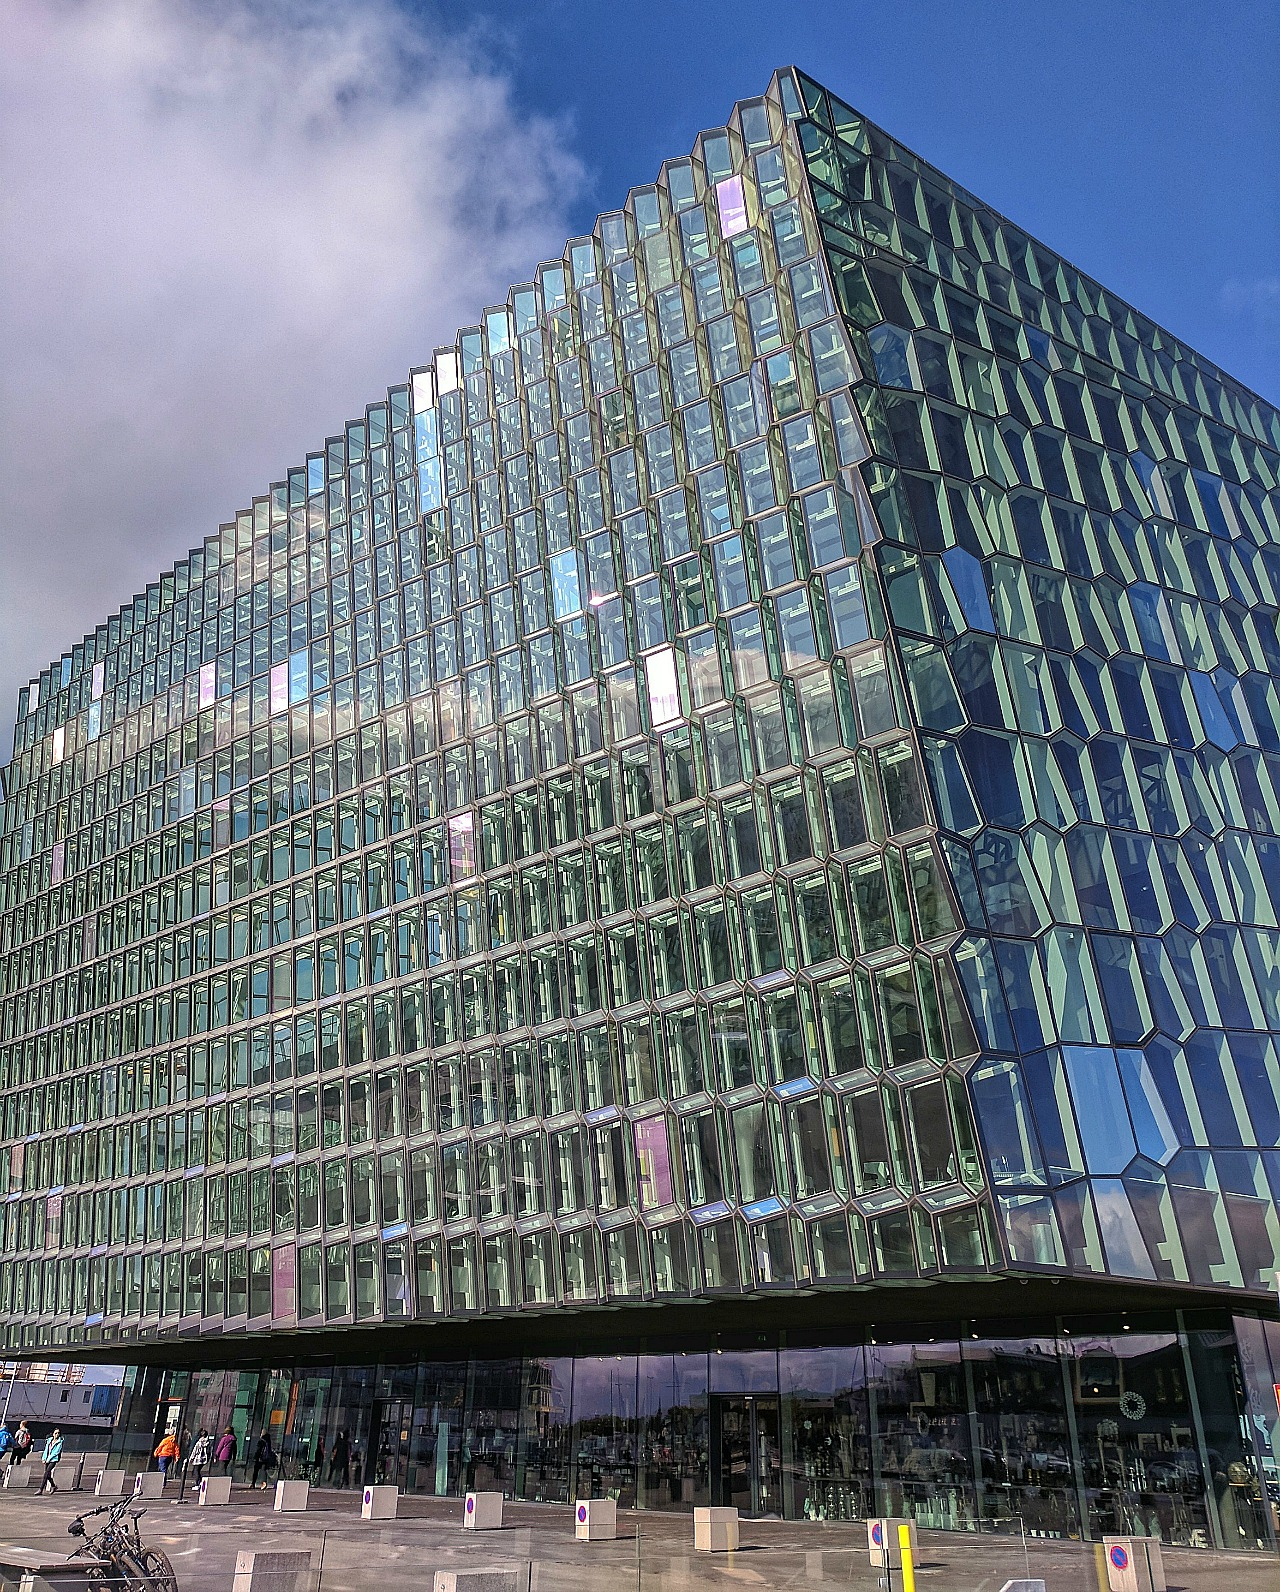 10 top reasons to visit Iceland. Modern Harpa Concert Center in Reykjavik.